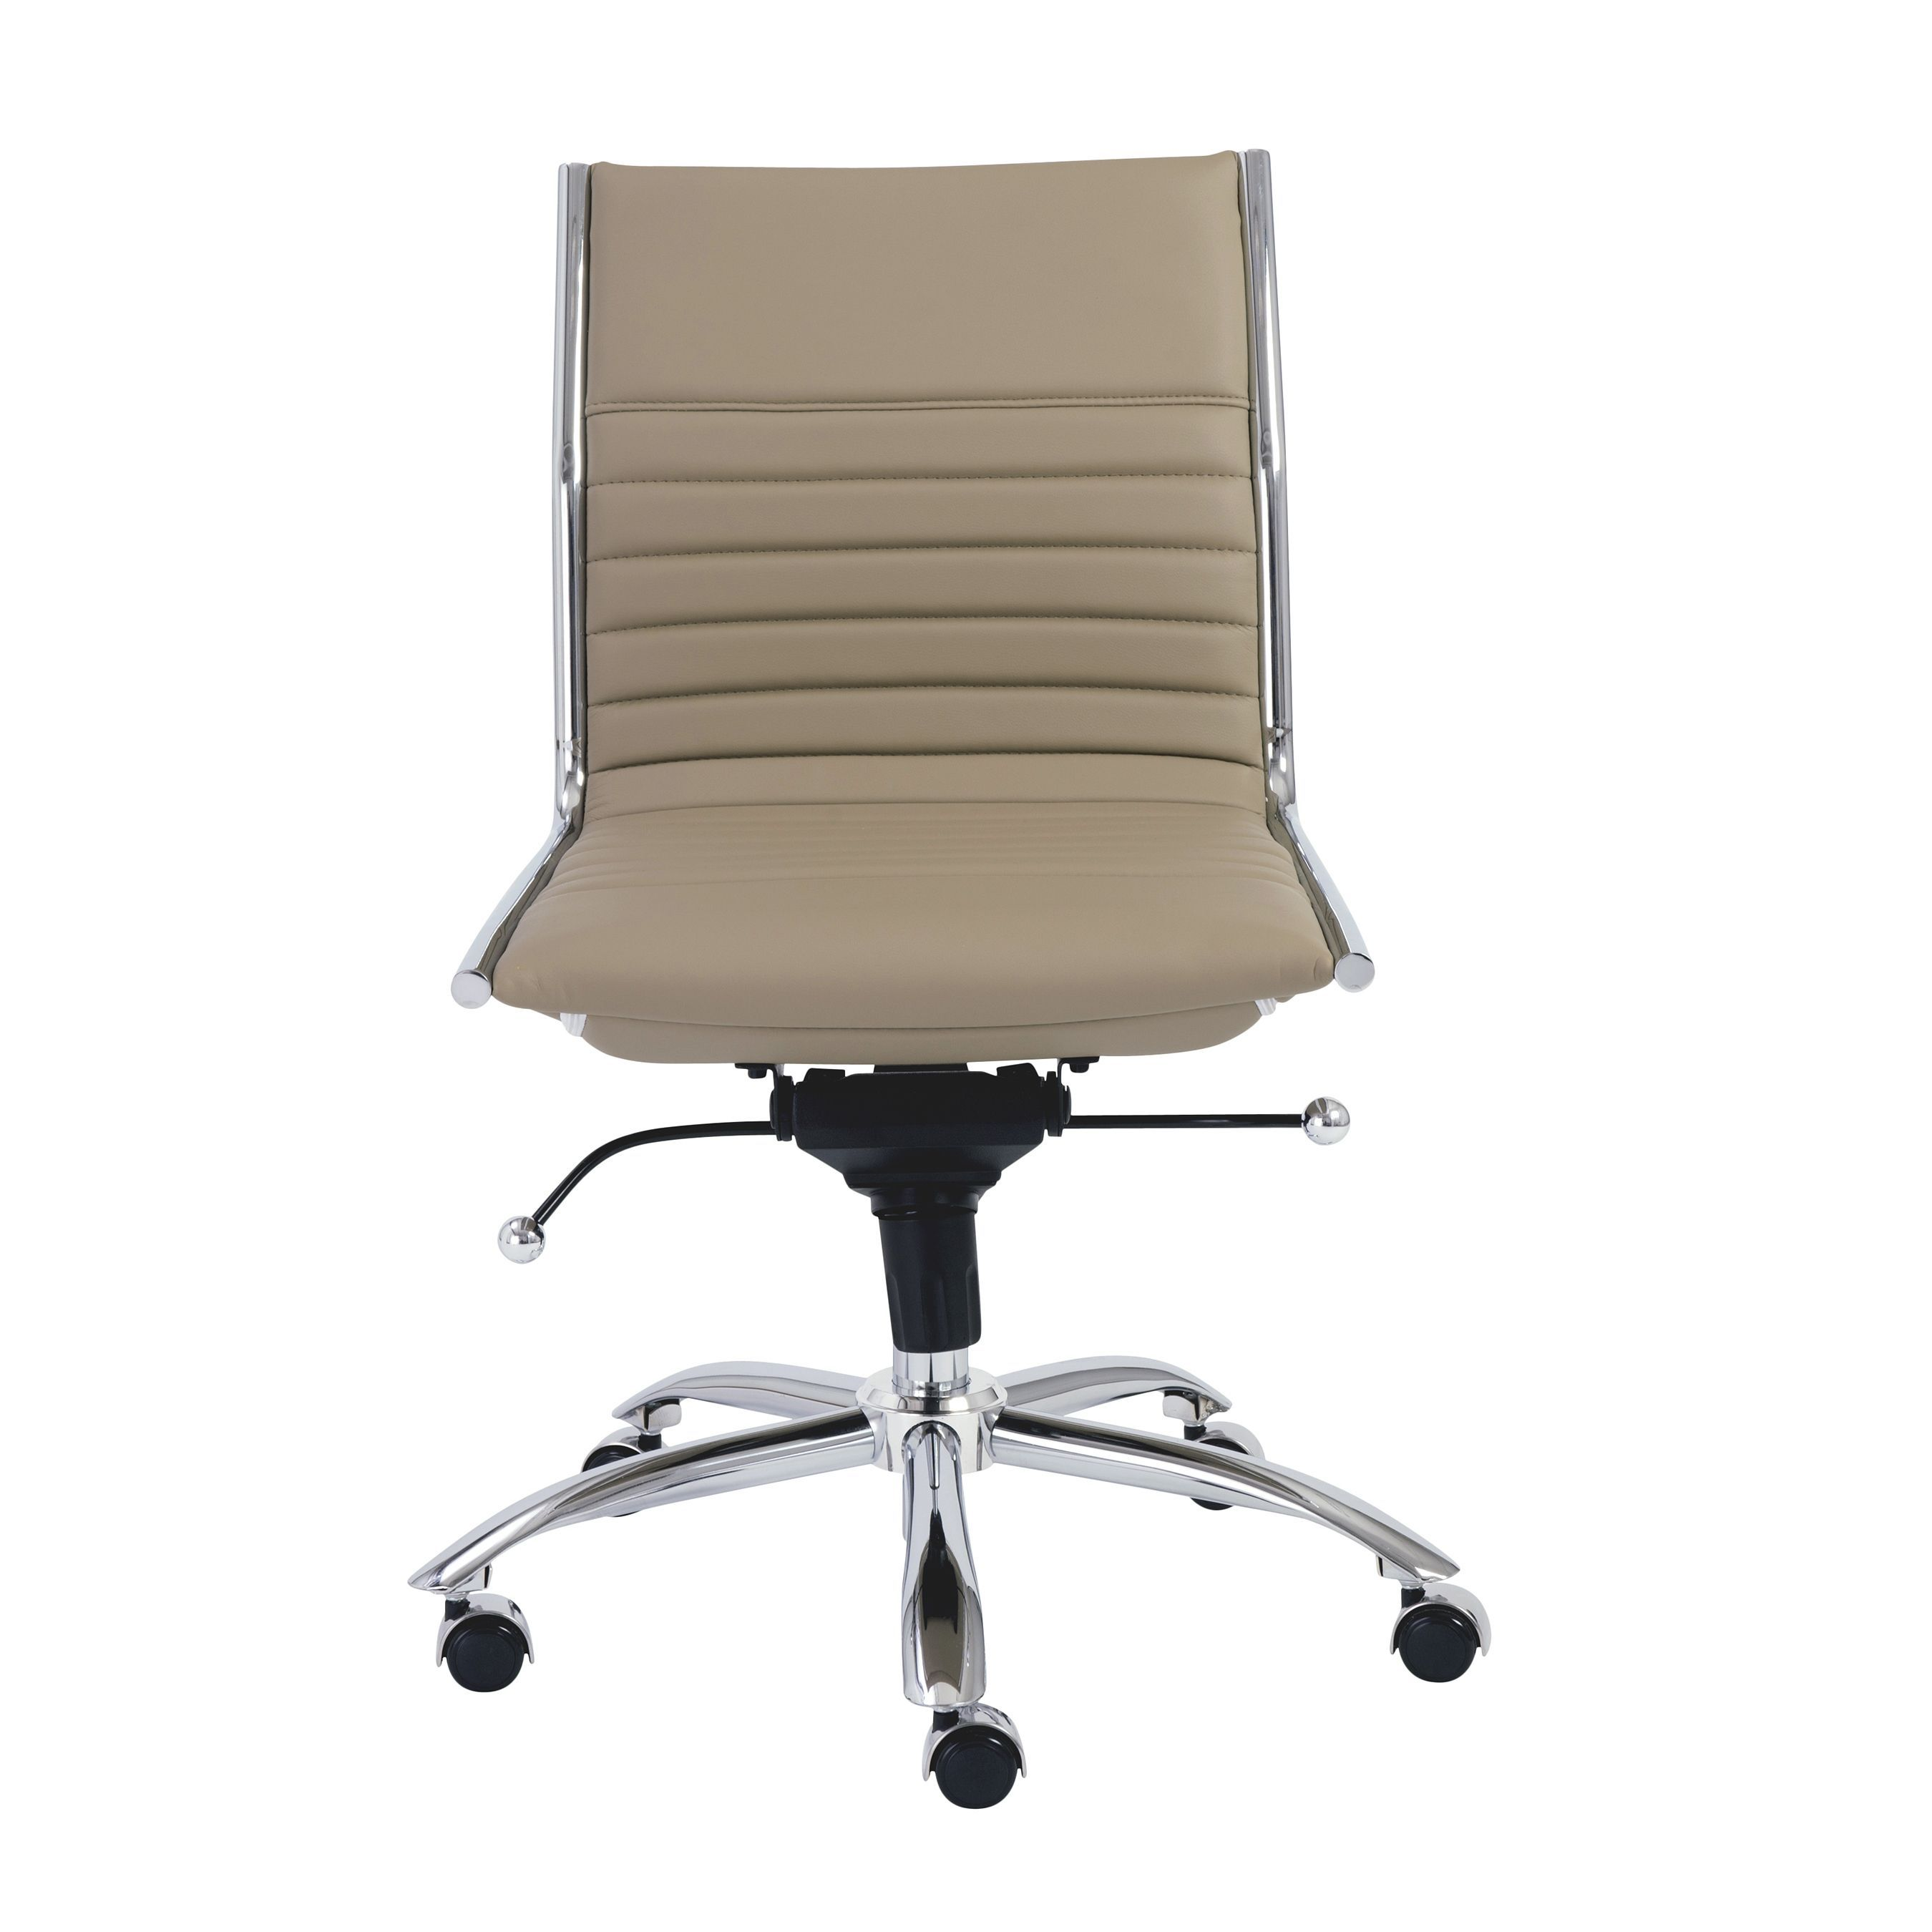 Euro Style Dirk Taupe Chrome Grey Low Back Armless Office Chair